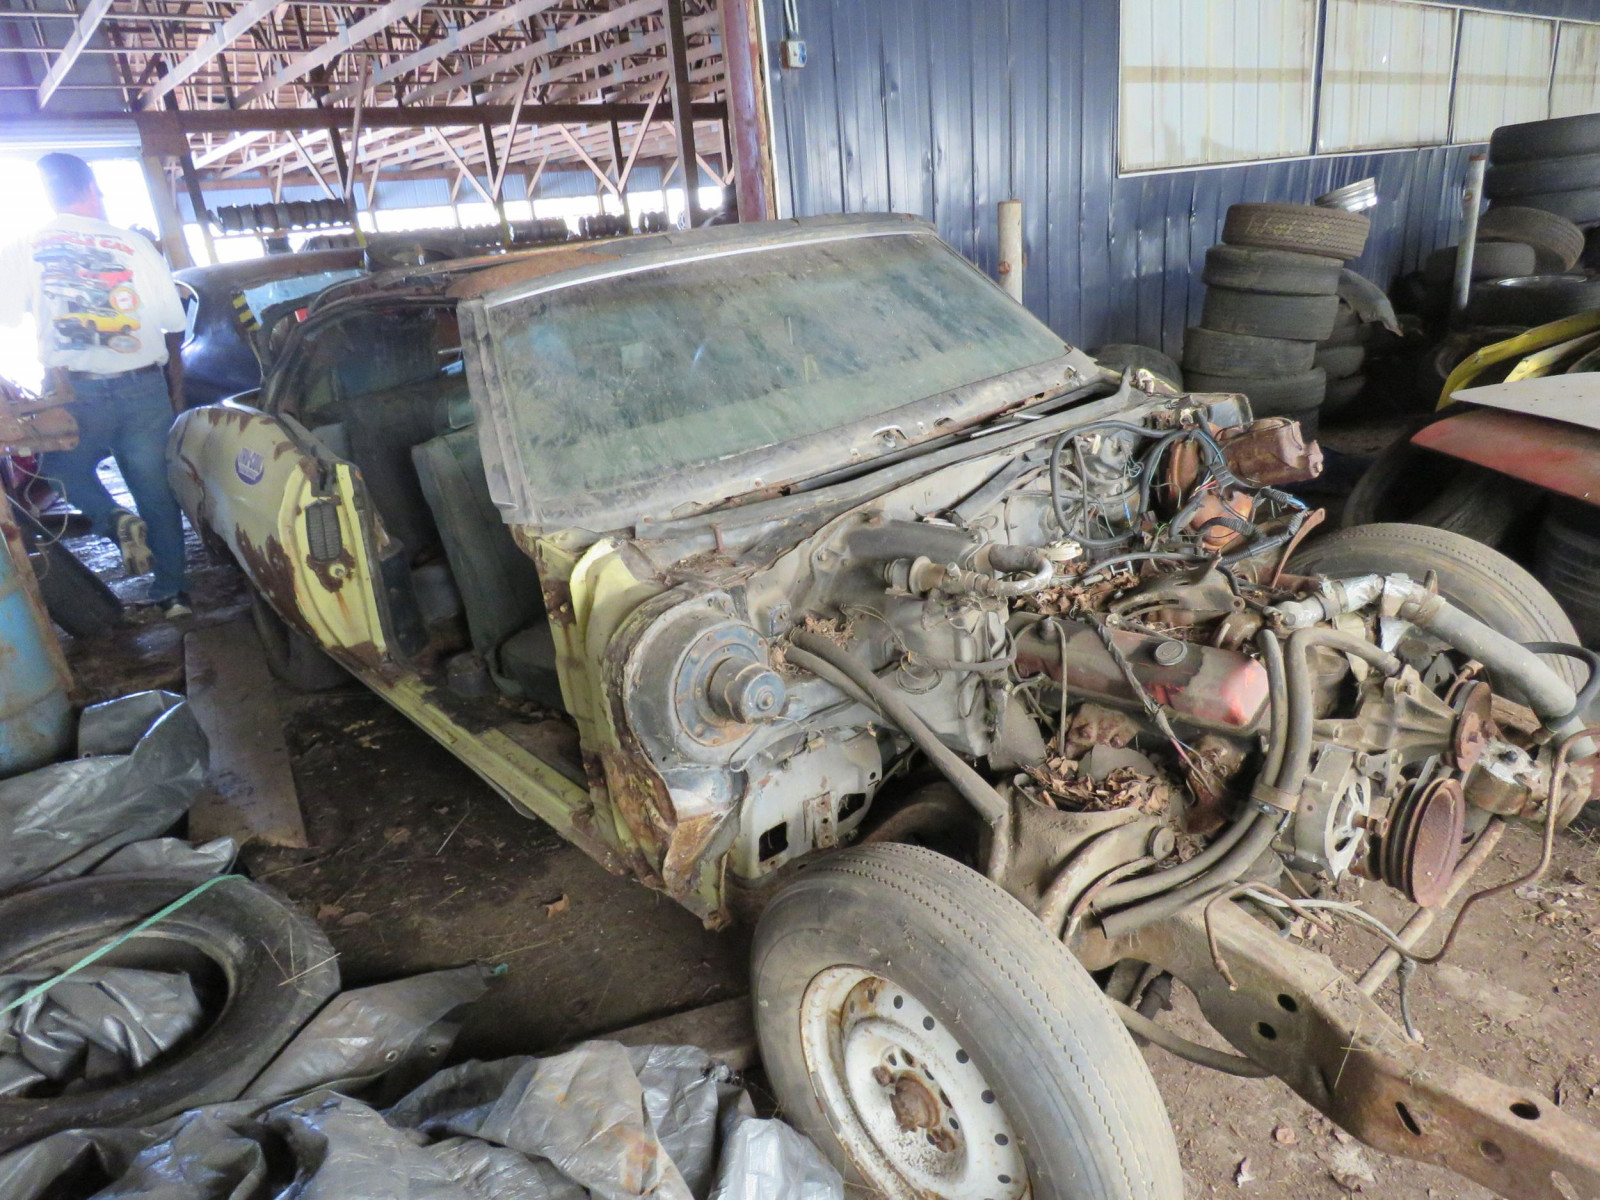 1972 Chevrolet Chevelle Convertible for Project or Parts - Image 1